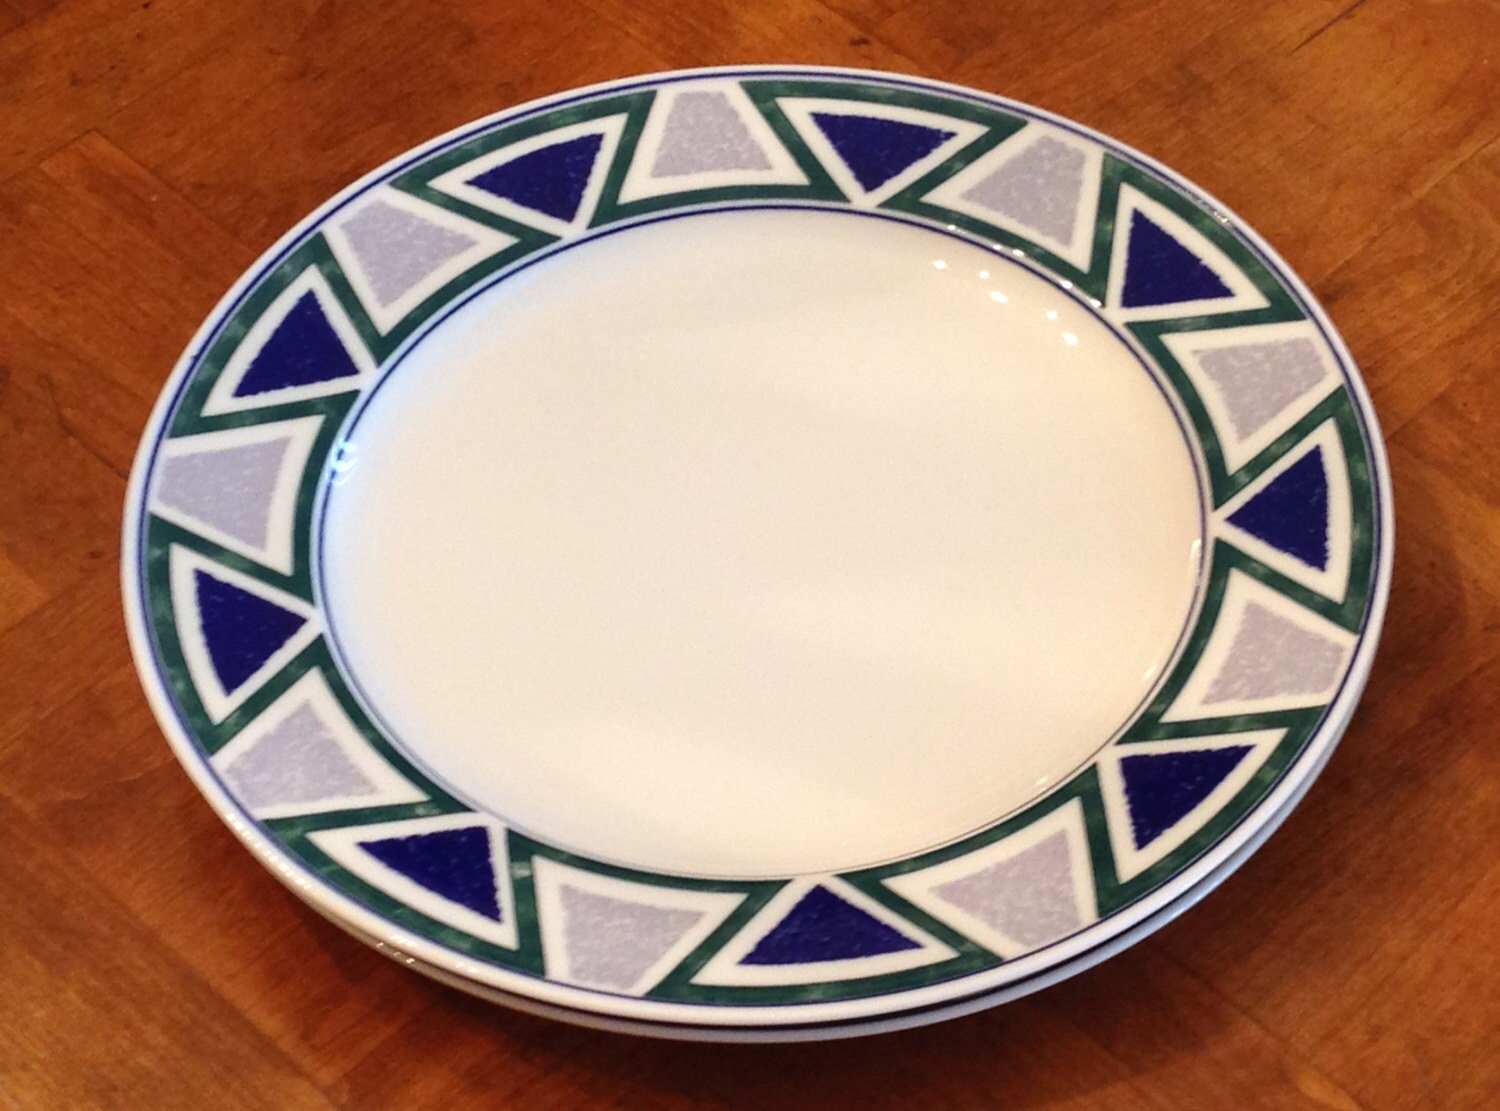 studio nova china dinnerware vista jjp01 blue by joschinashop